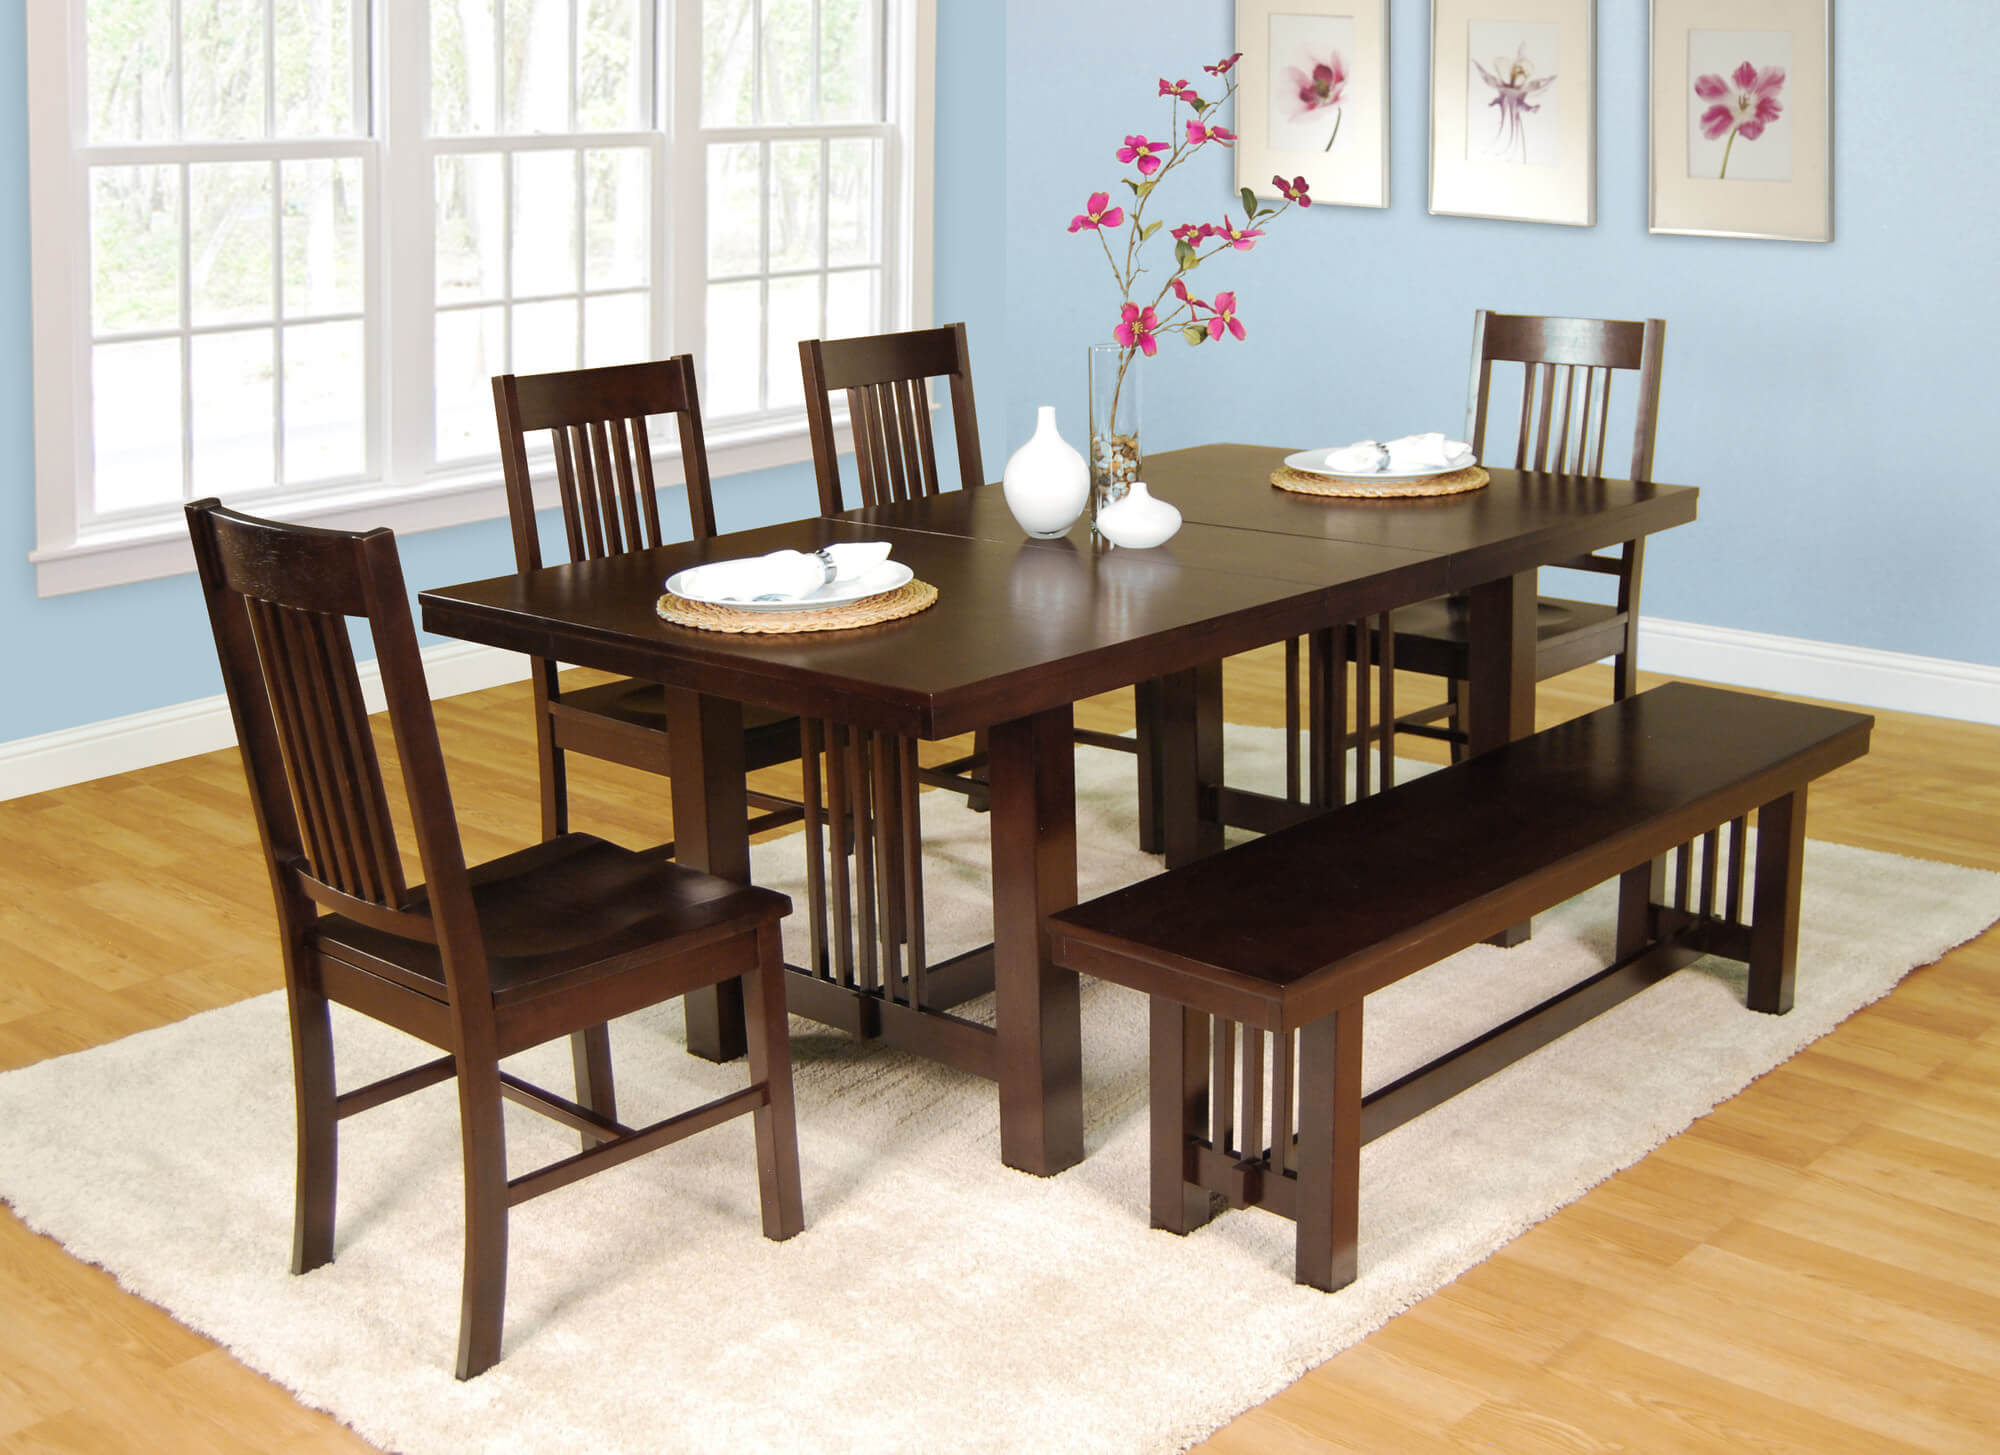 26 Big amp Small Dining Room Sets with Bench Seating : 10way dining room set with bench from www.homestratosphere.com size 2000 x 1455 jpeg 233kB